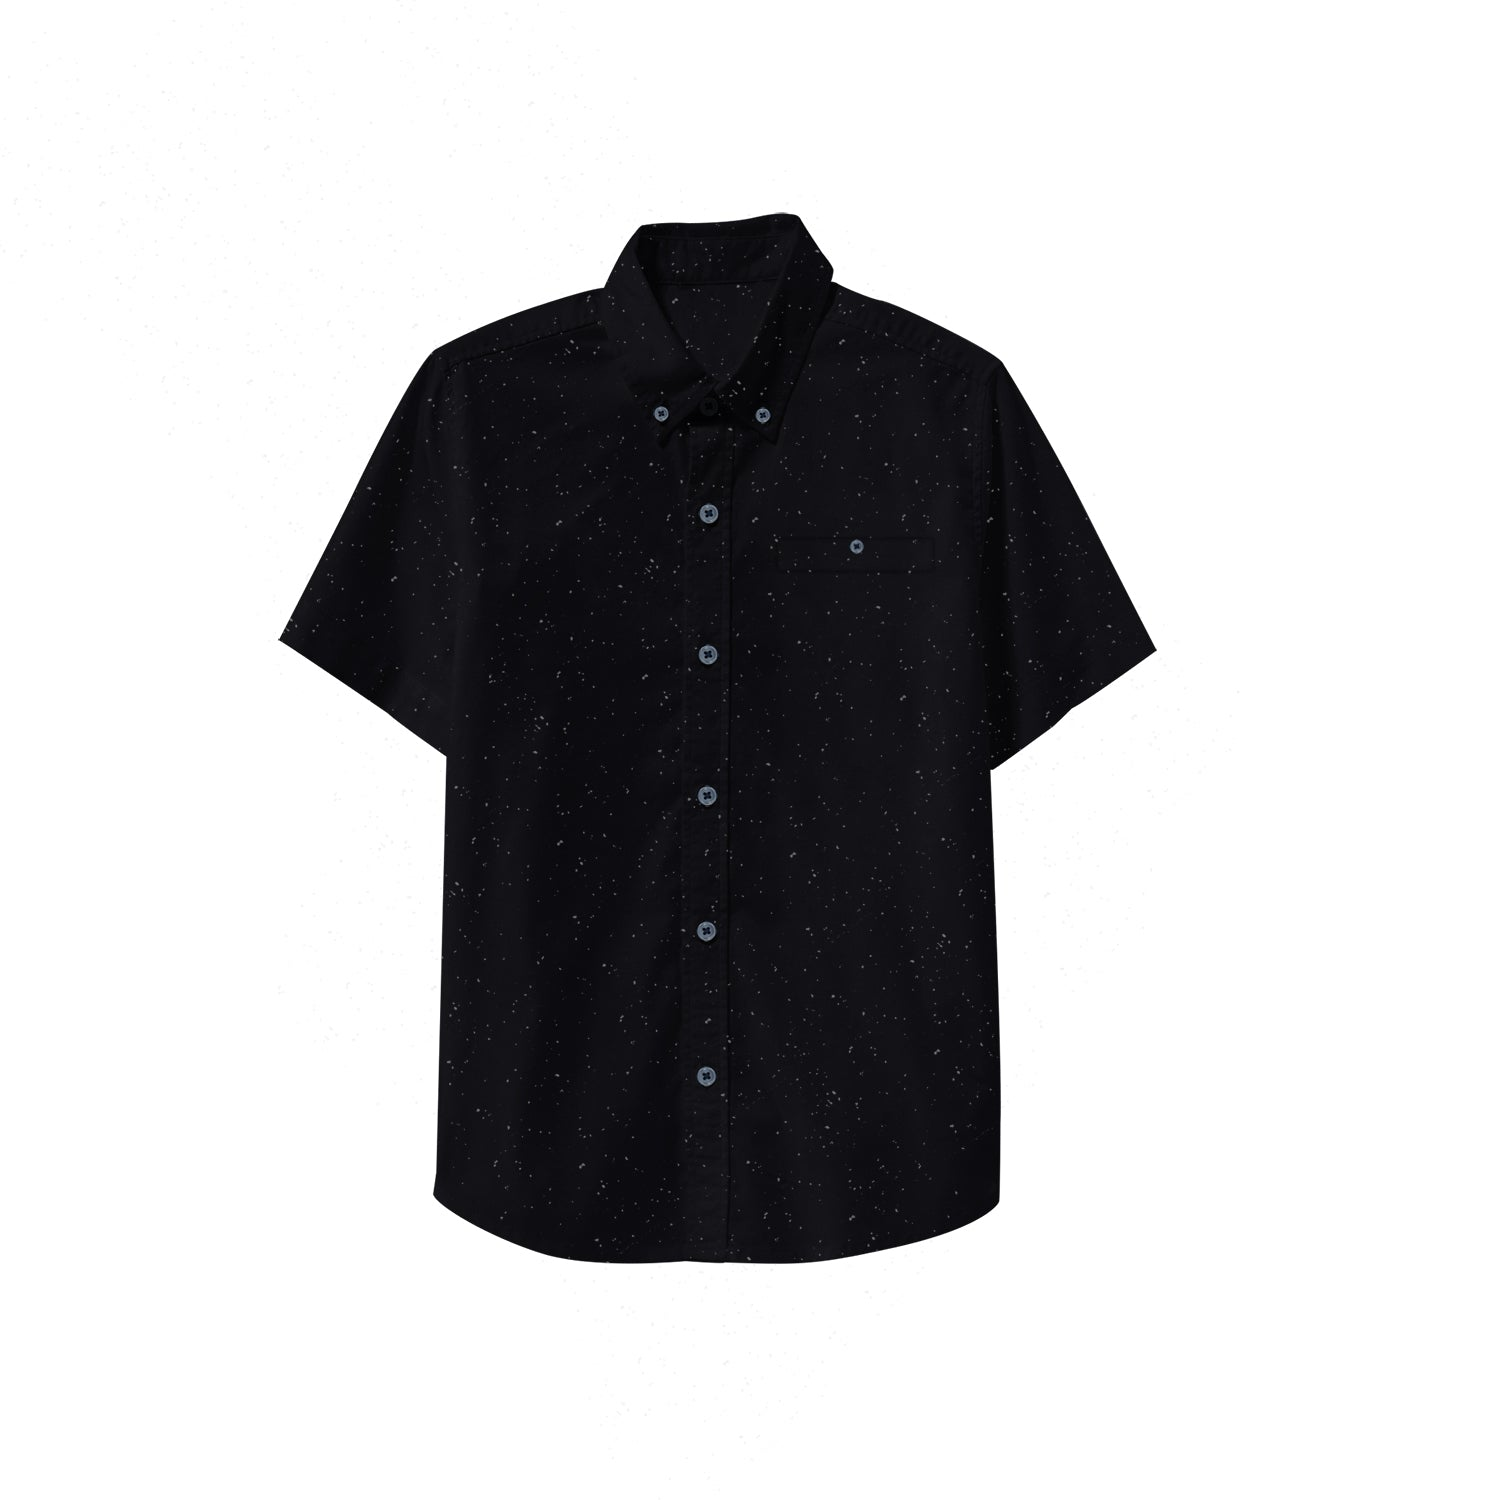 NEXT P.Q Button Down Shirt For Kids-Black with Dotted-BE9381